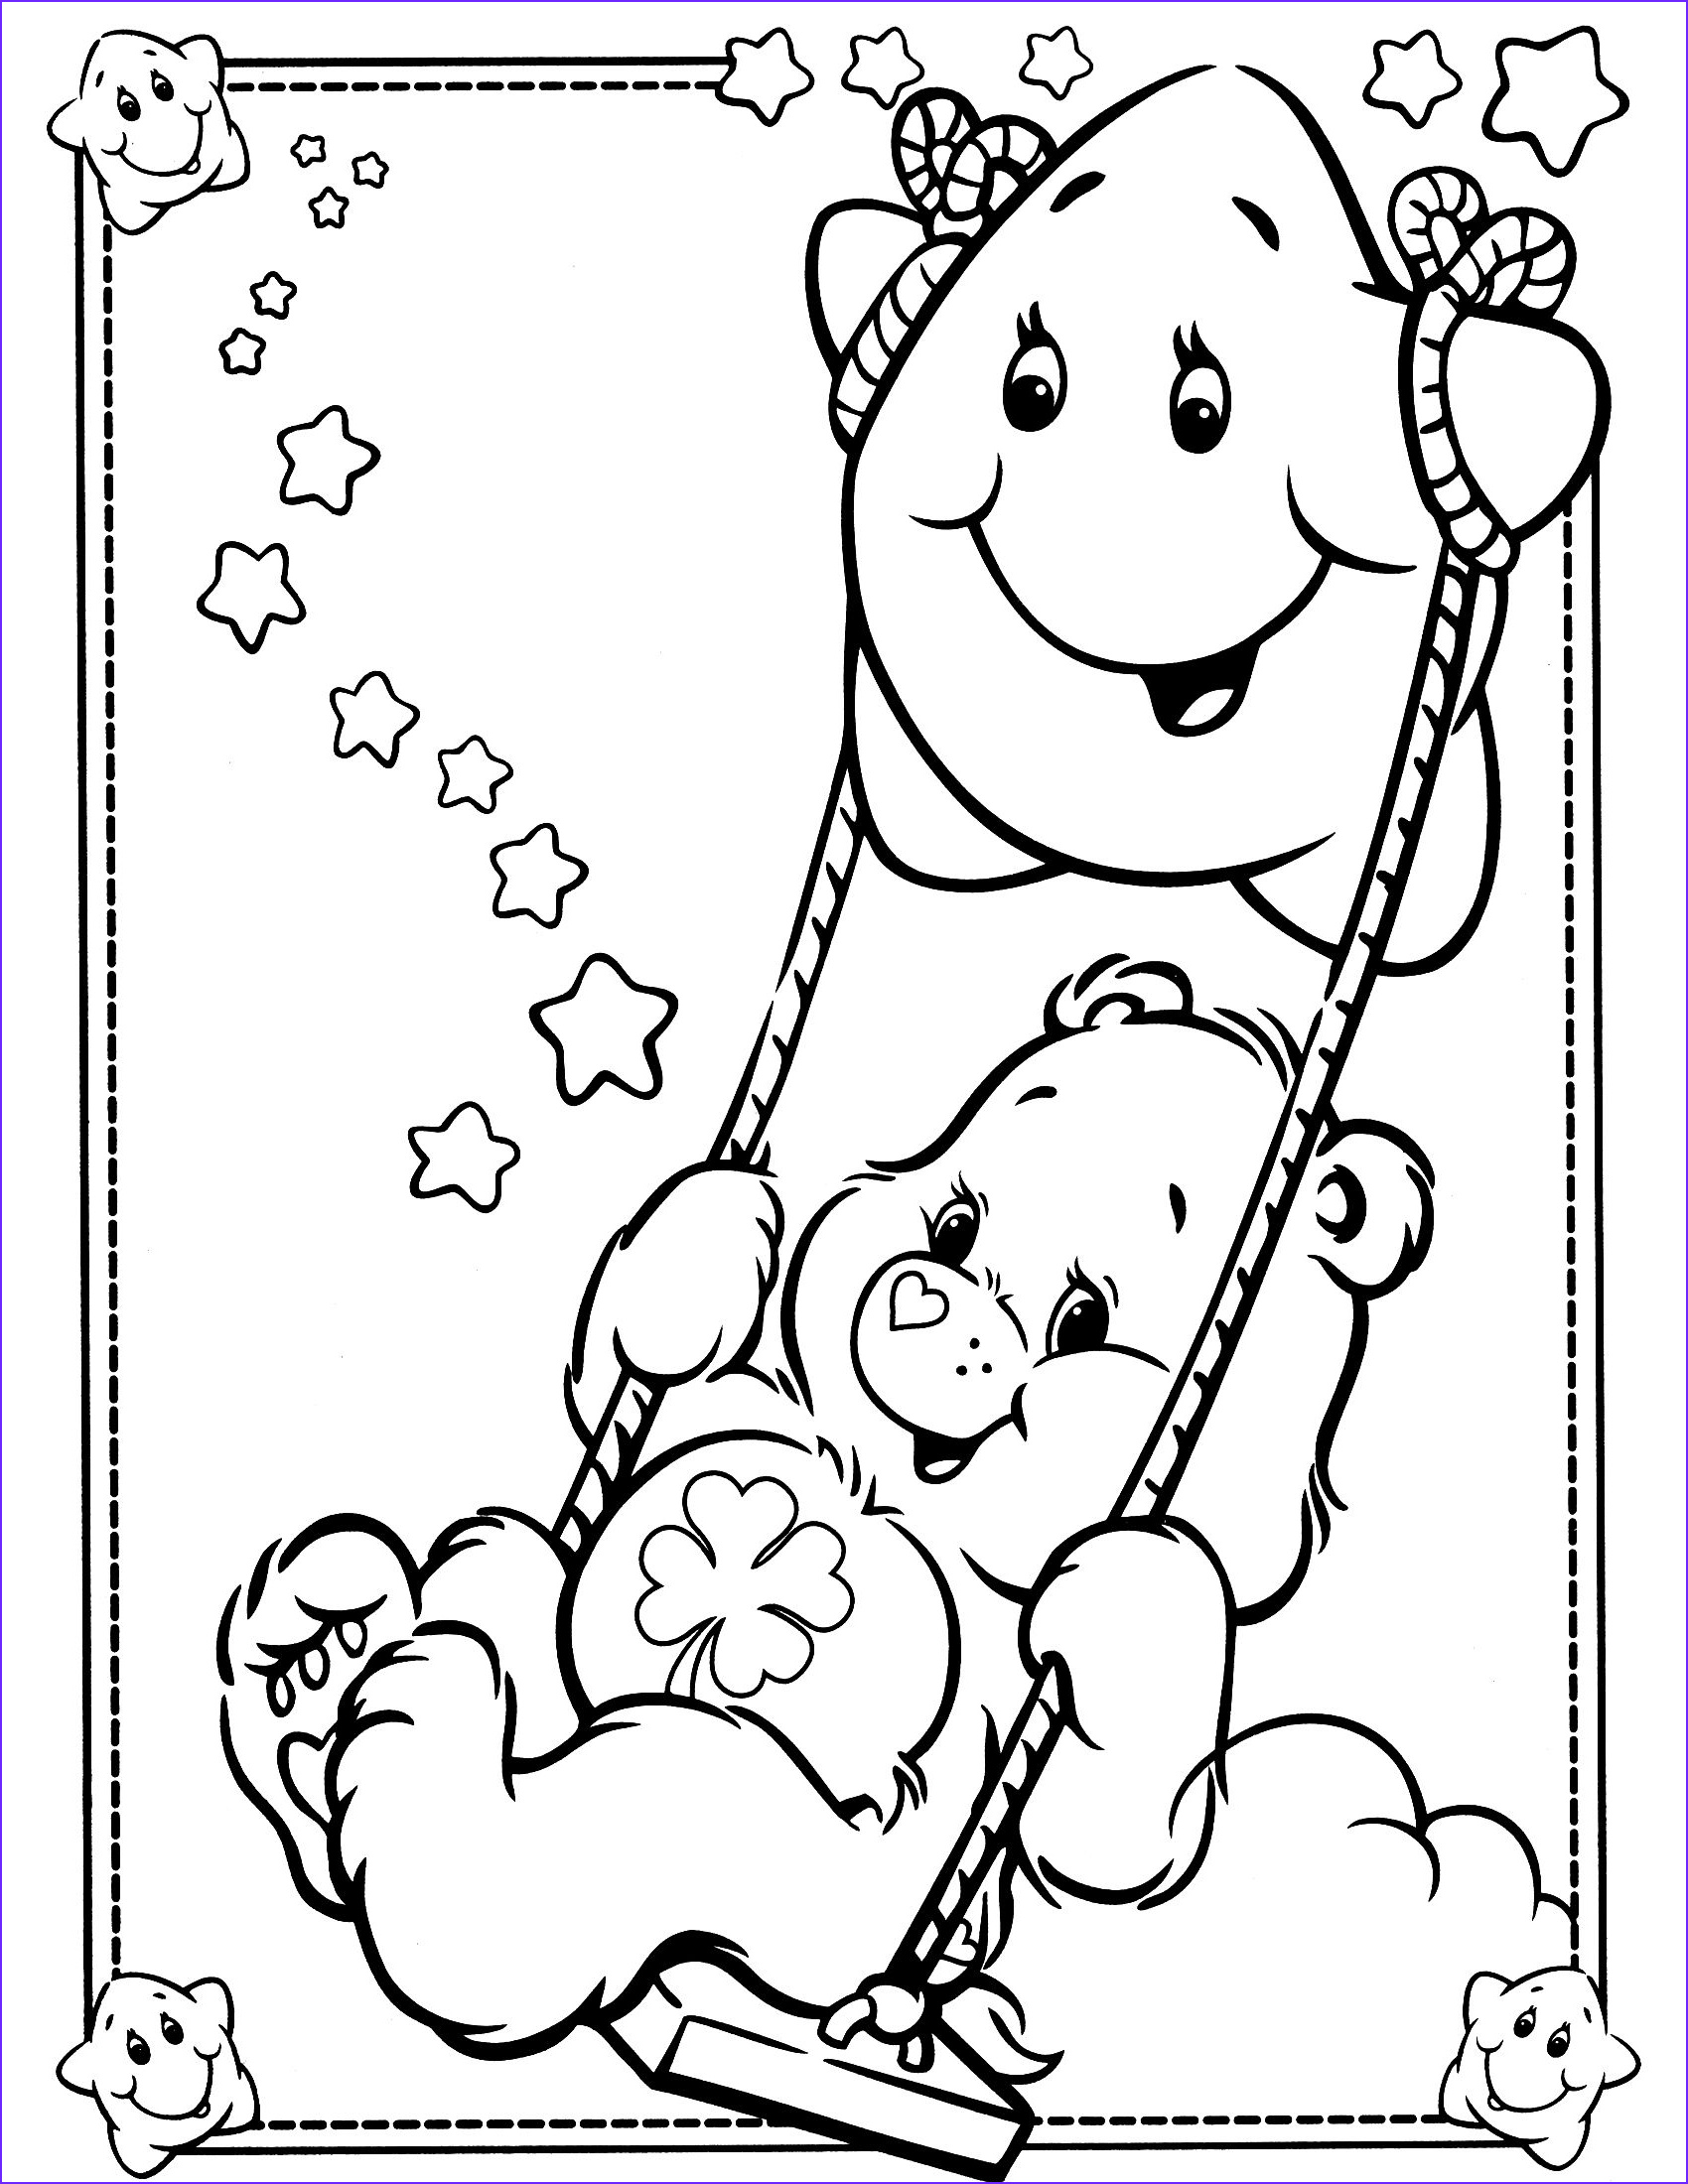 Care Bears Coloring Book Beautiful Images Care Bears Coloring Page